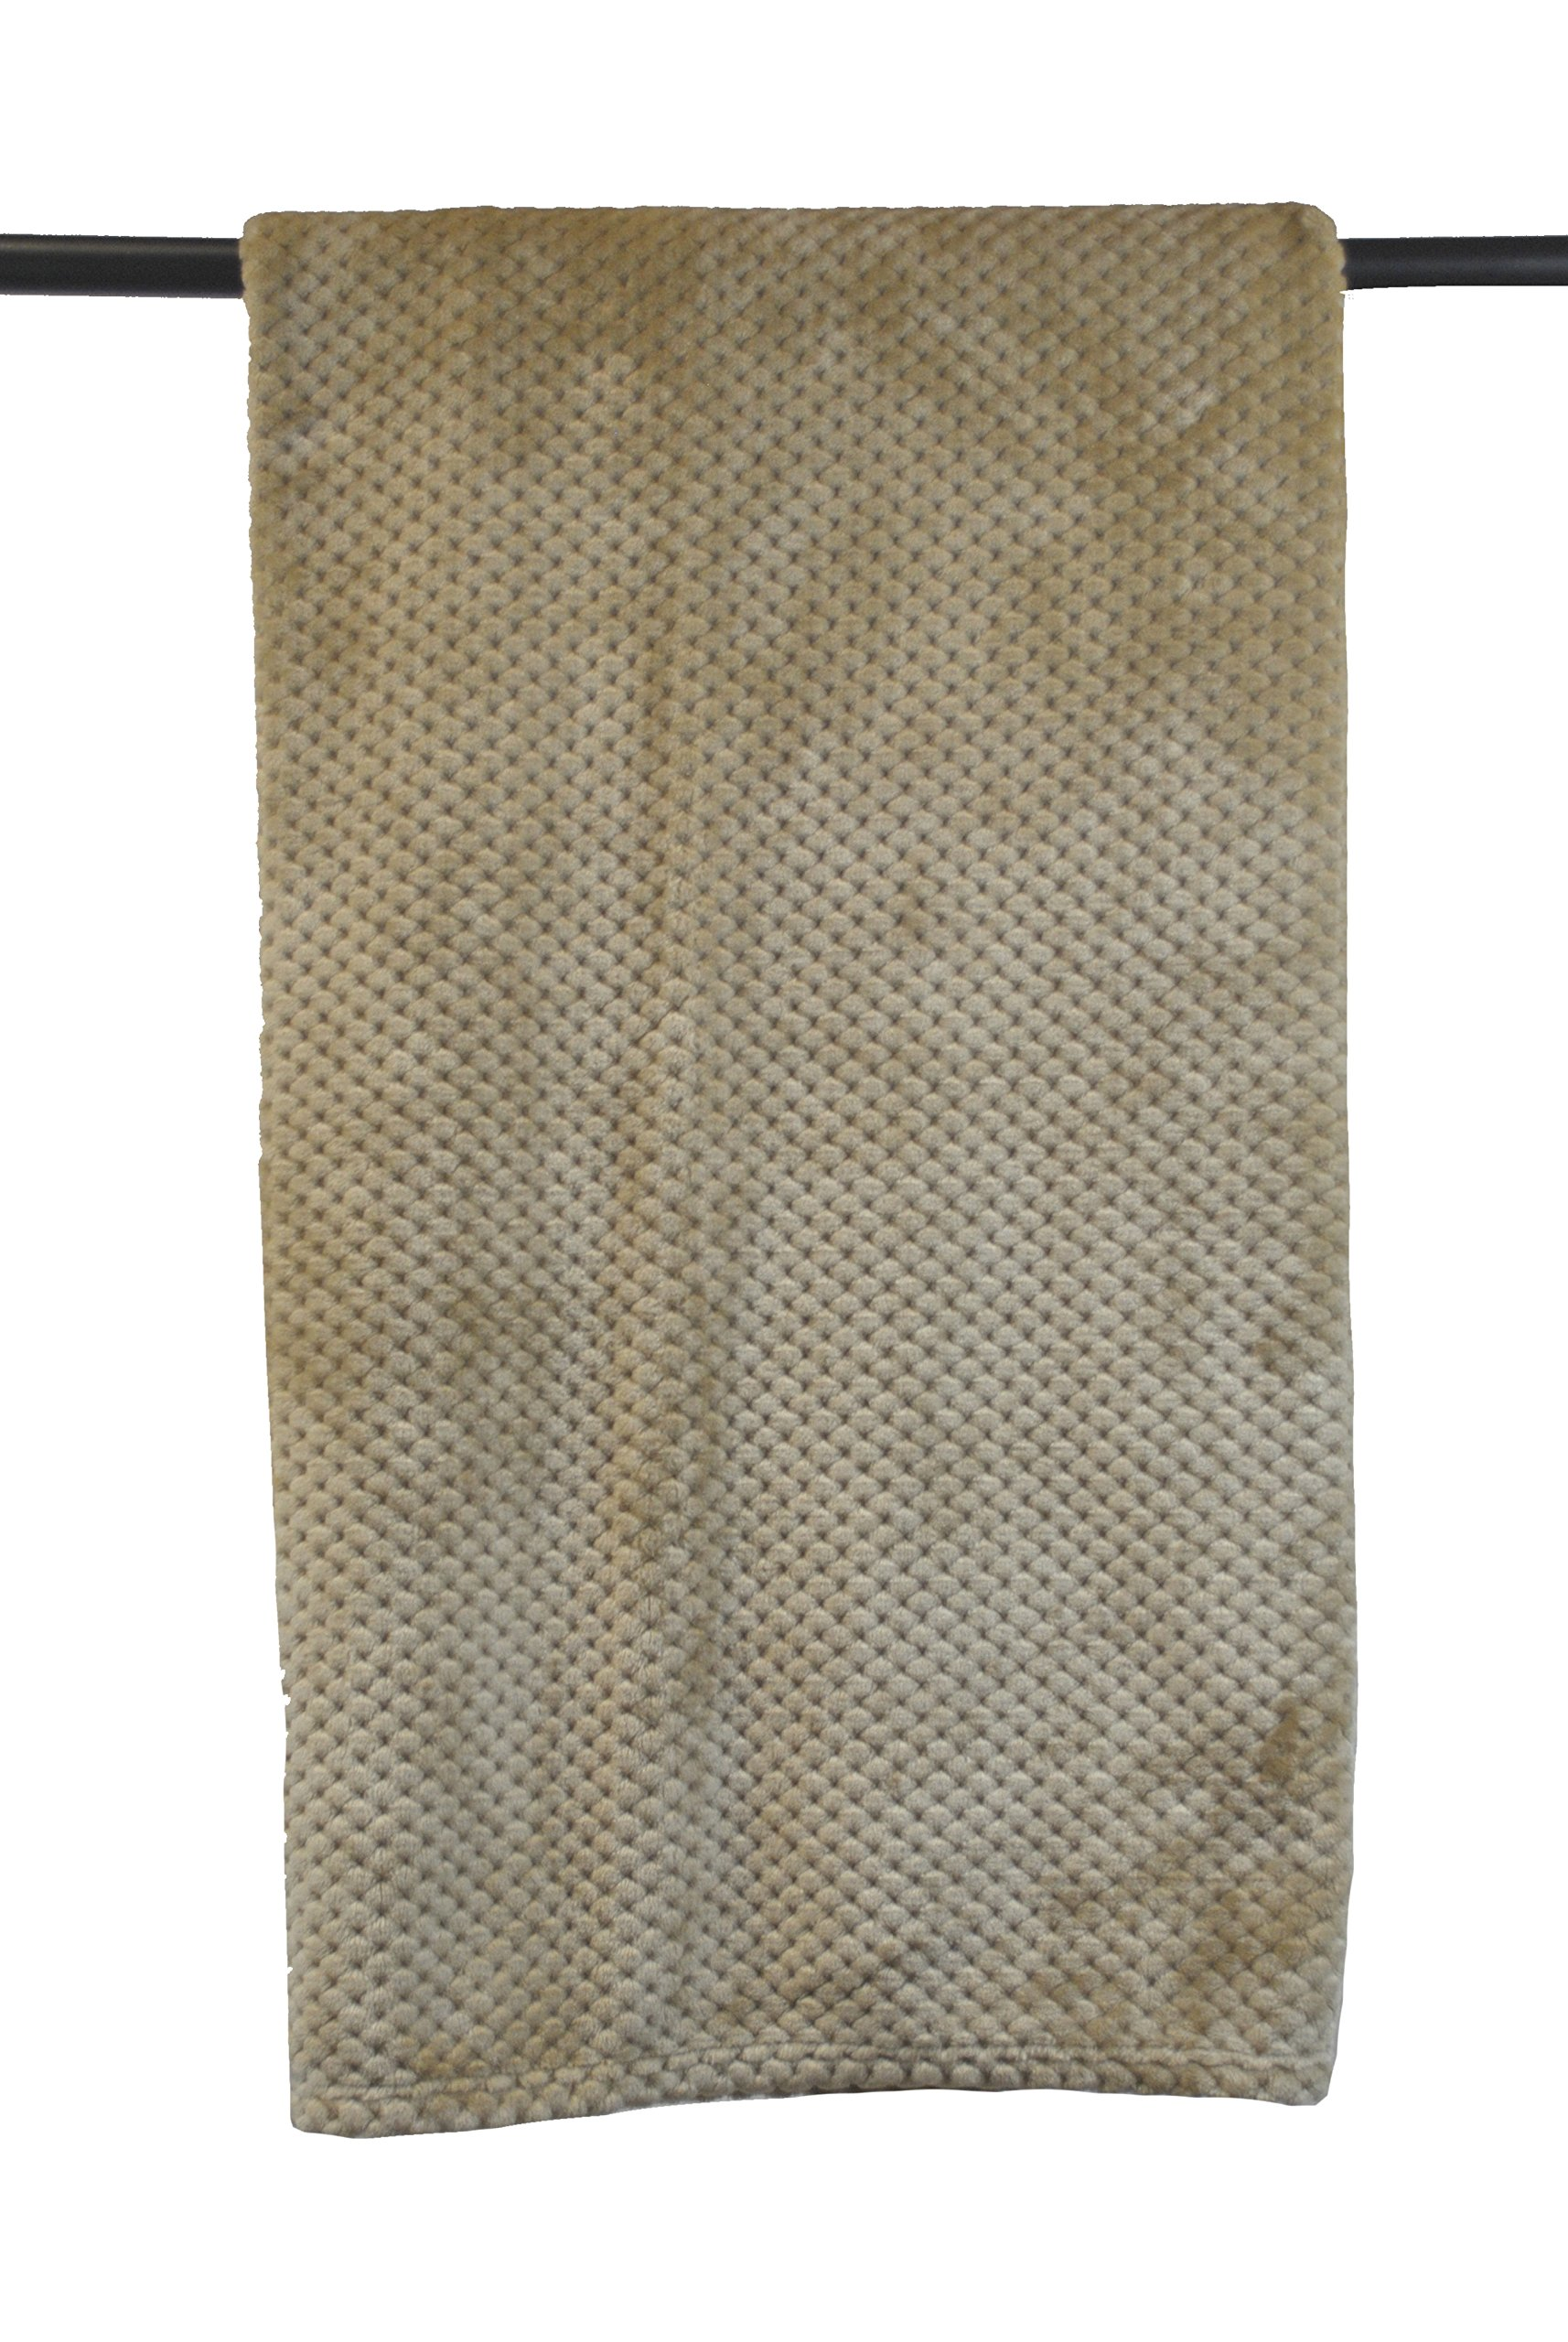 DII Bone Dry Small Pet Throw Blanket, 36x54'', Warm, Soft, Plush for Couch, Car, Trunk, Cage, Kennel, Dog House-Taupe